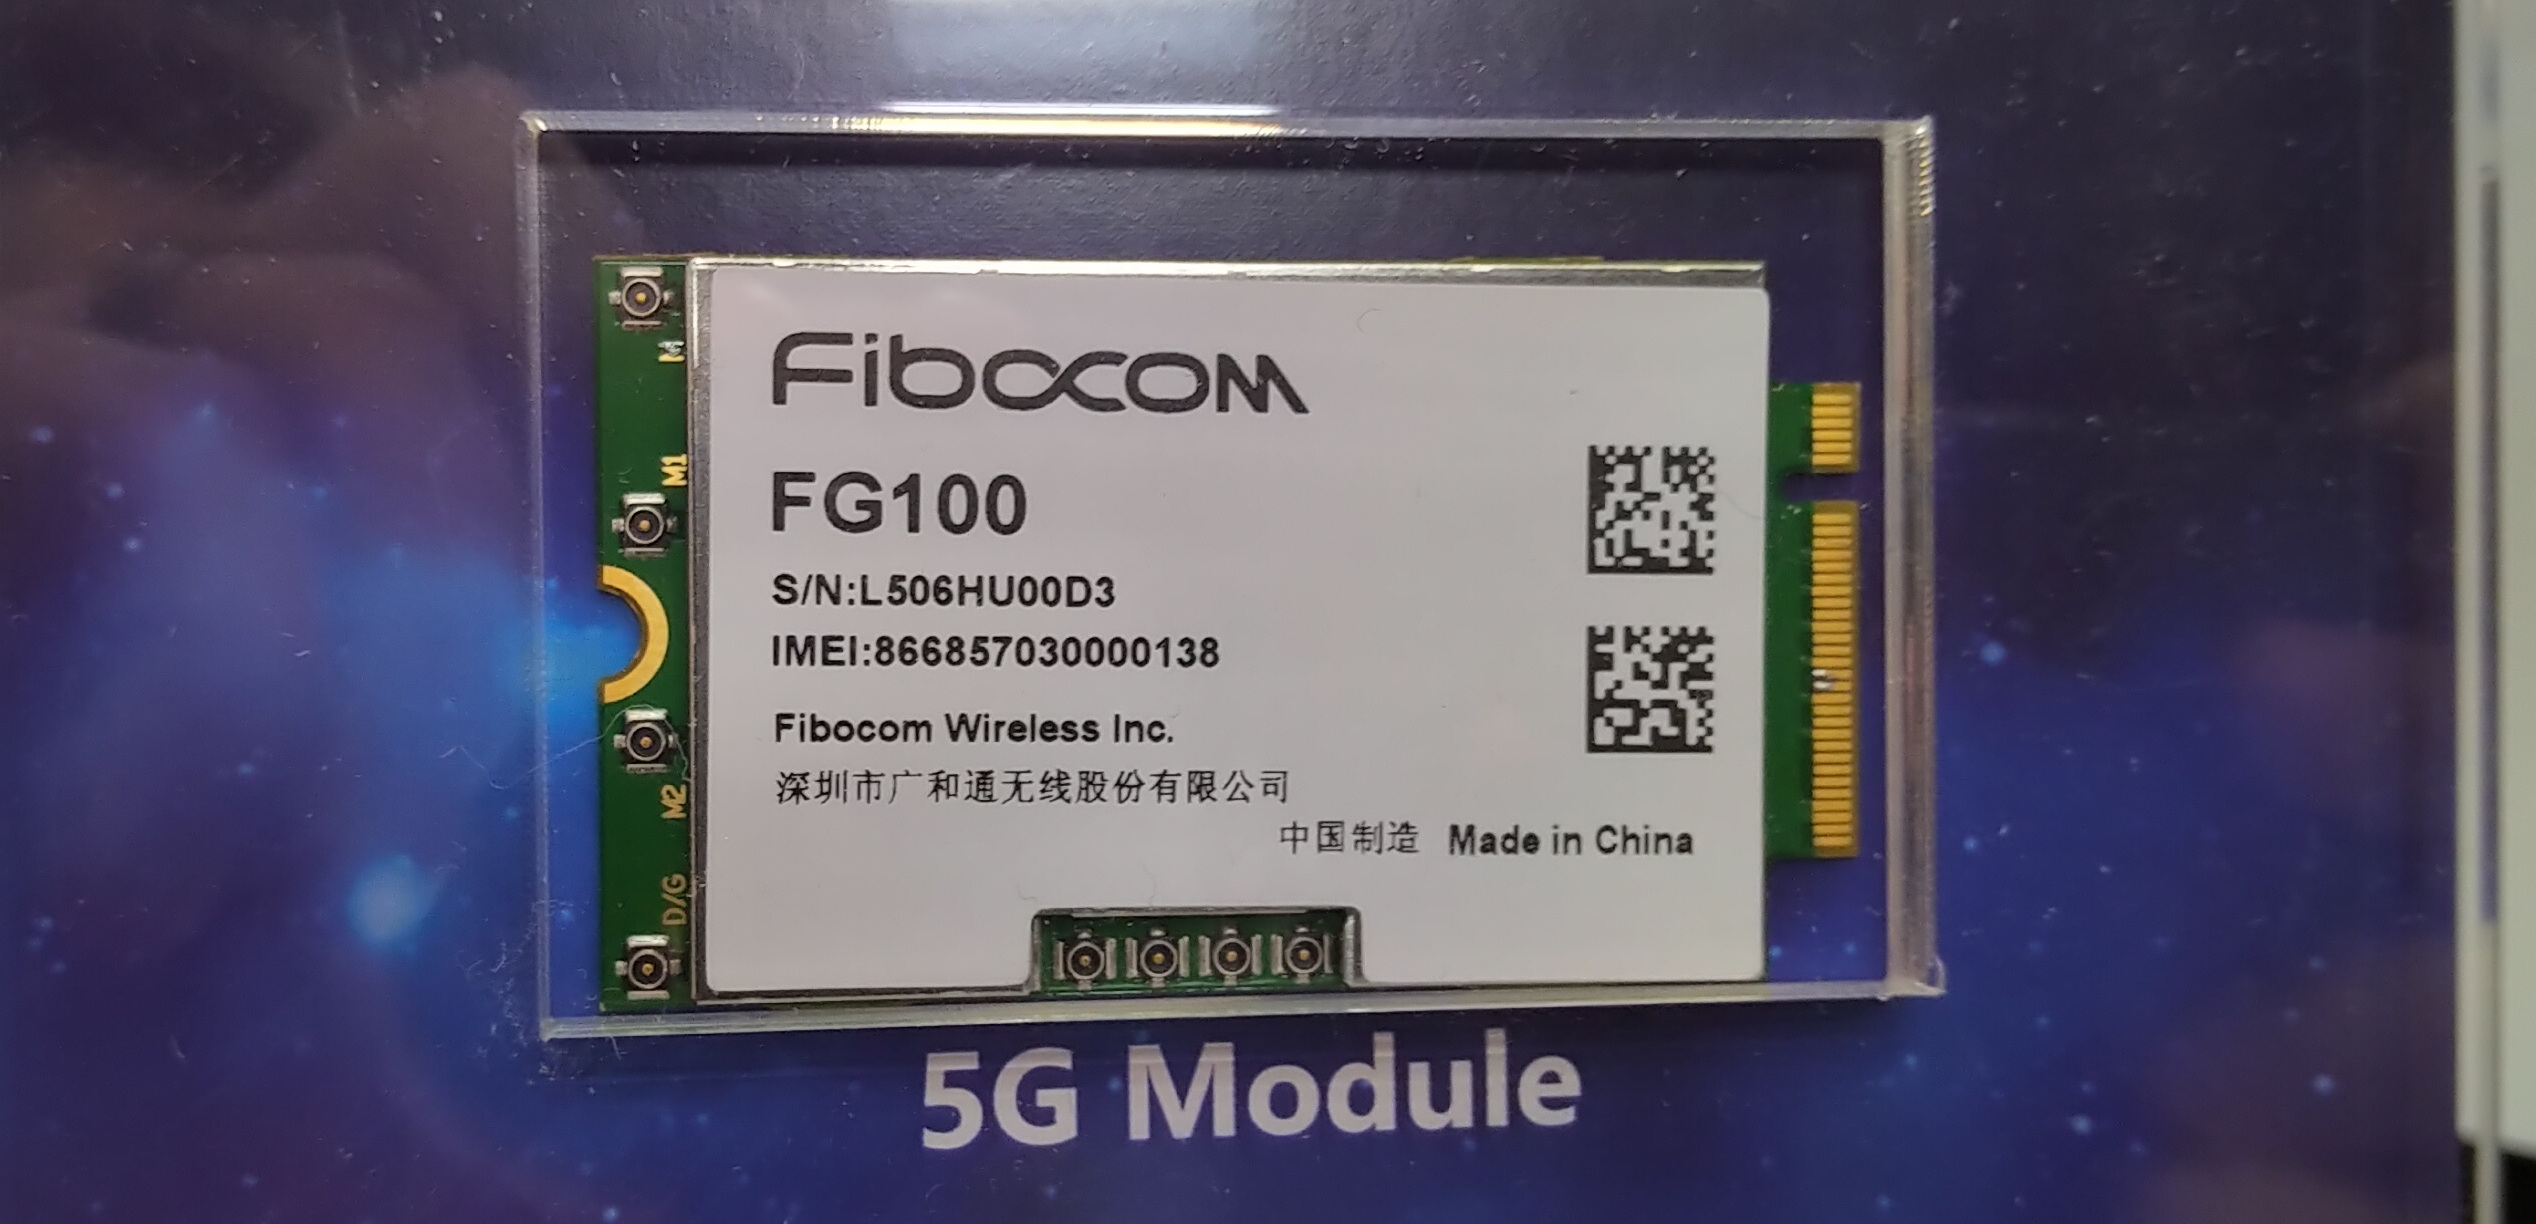 Sizing Up The 5G Modem Market: Qualcomm, Intel, Huawei